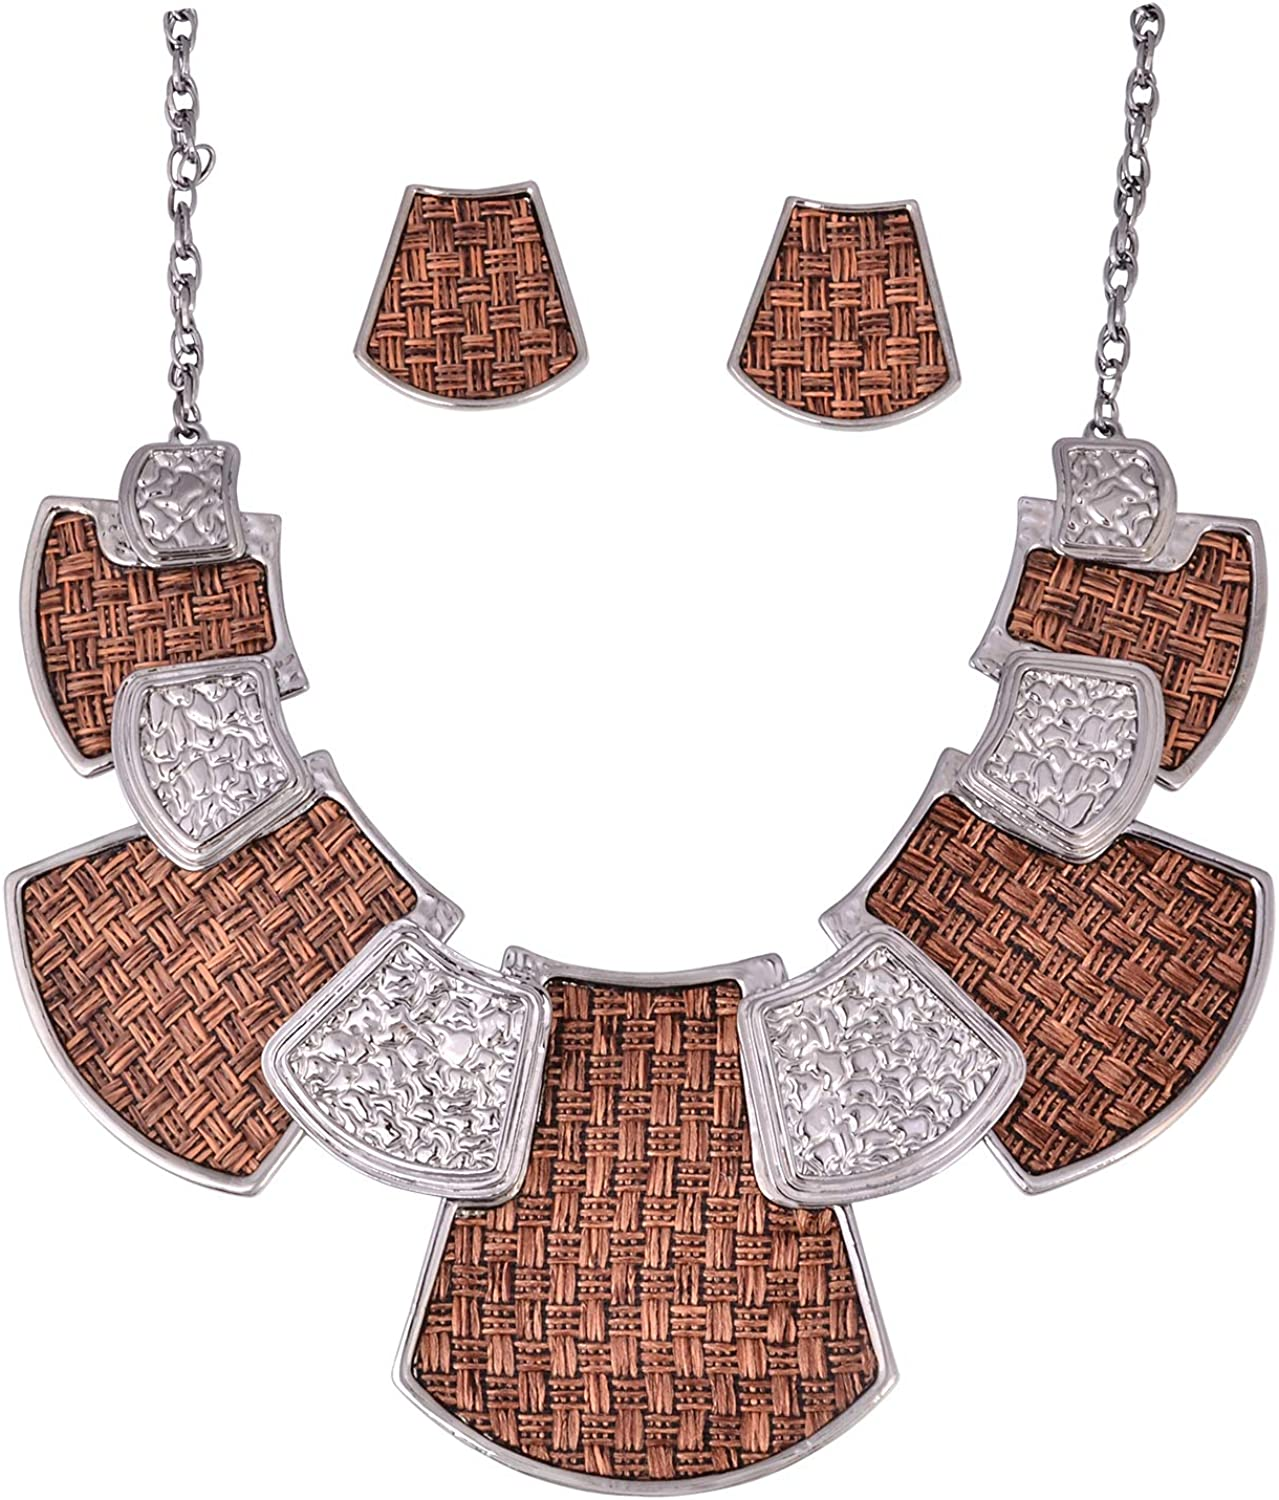 Vintage Exaggerated Black Hammered Shape Bib Necklace Earrings Sets Fashion Jewelry Chunky Choker Necklace for Women Girl Mother Wife Gift